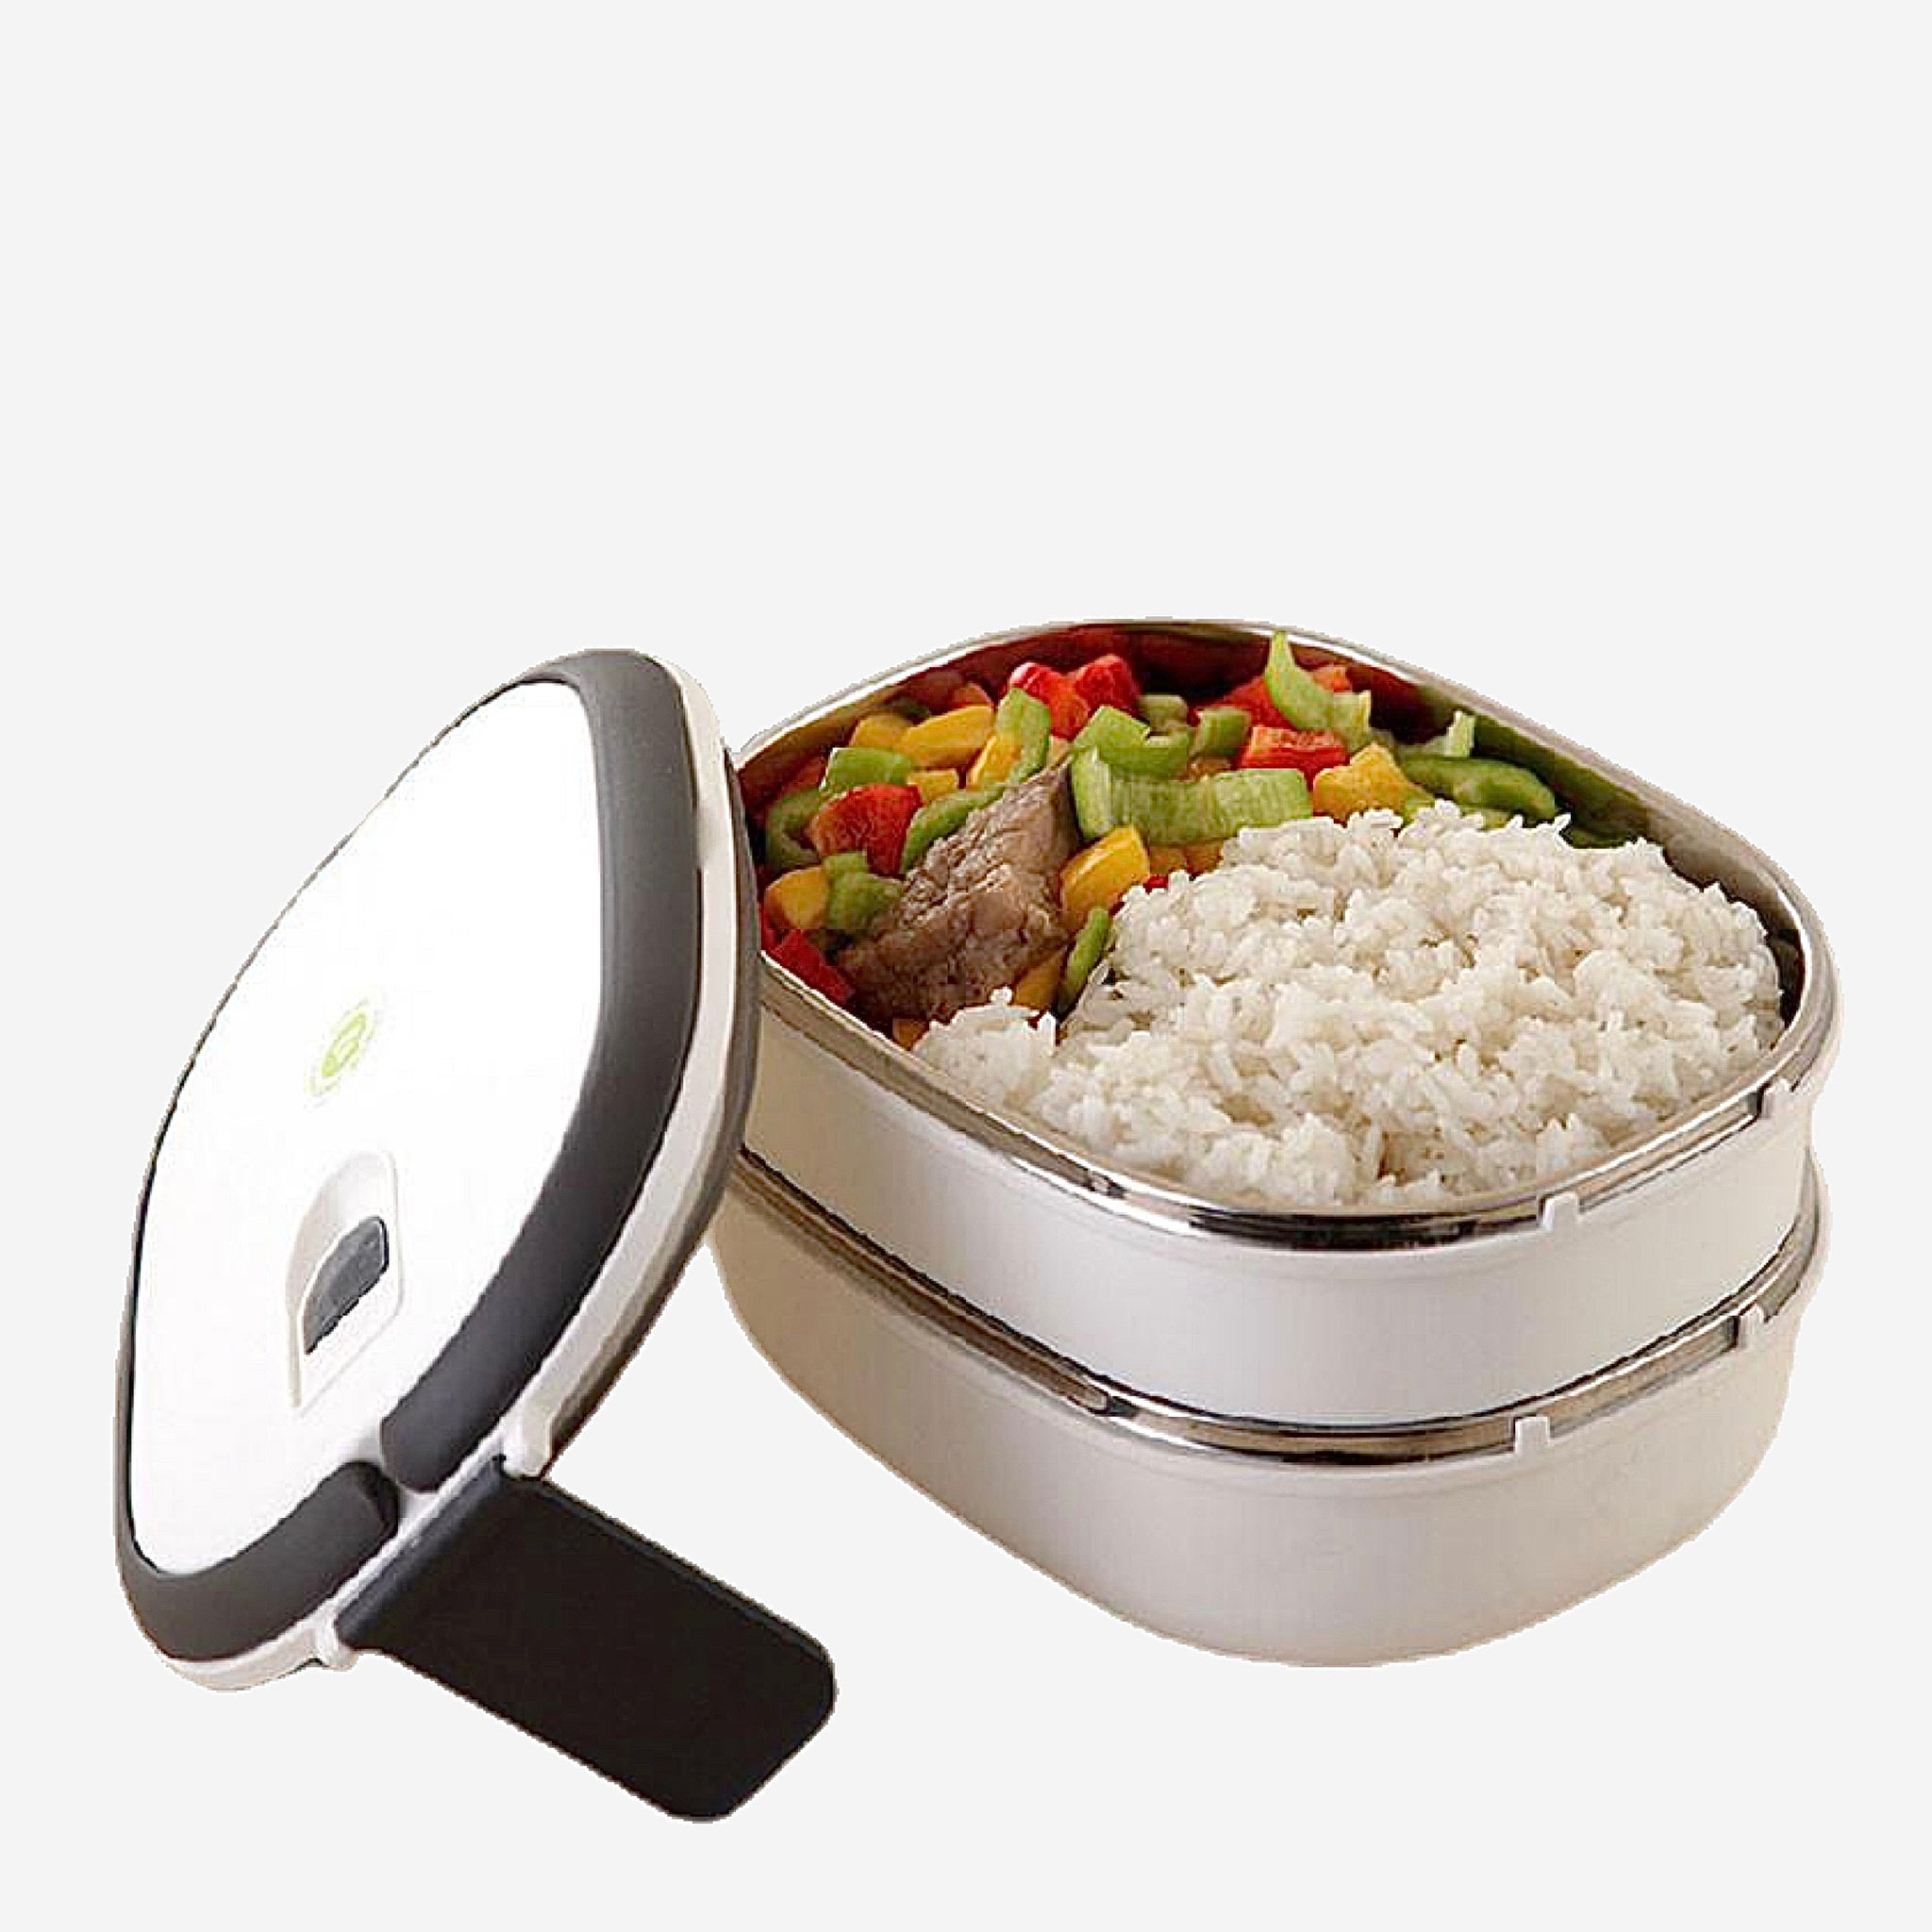 Japanese Thermal insulated Bento Lunch Box Trend